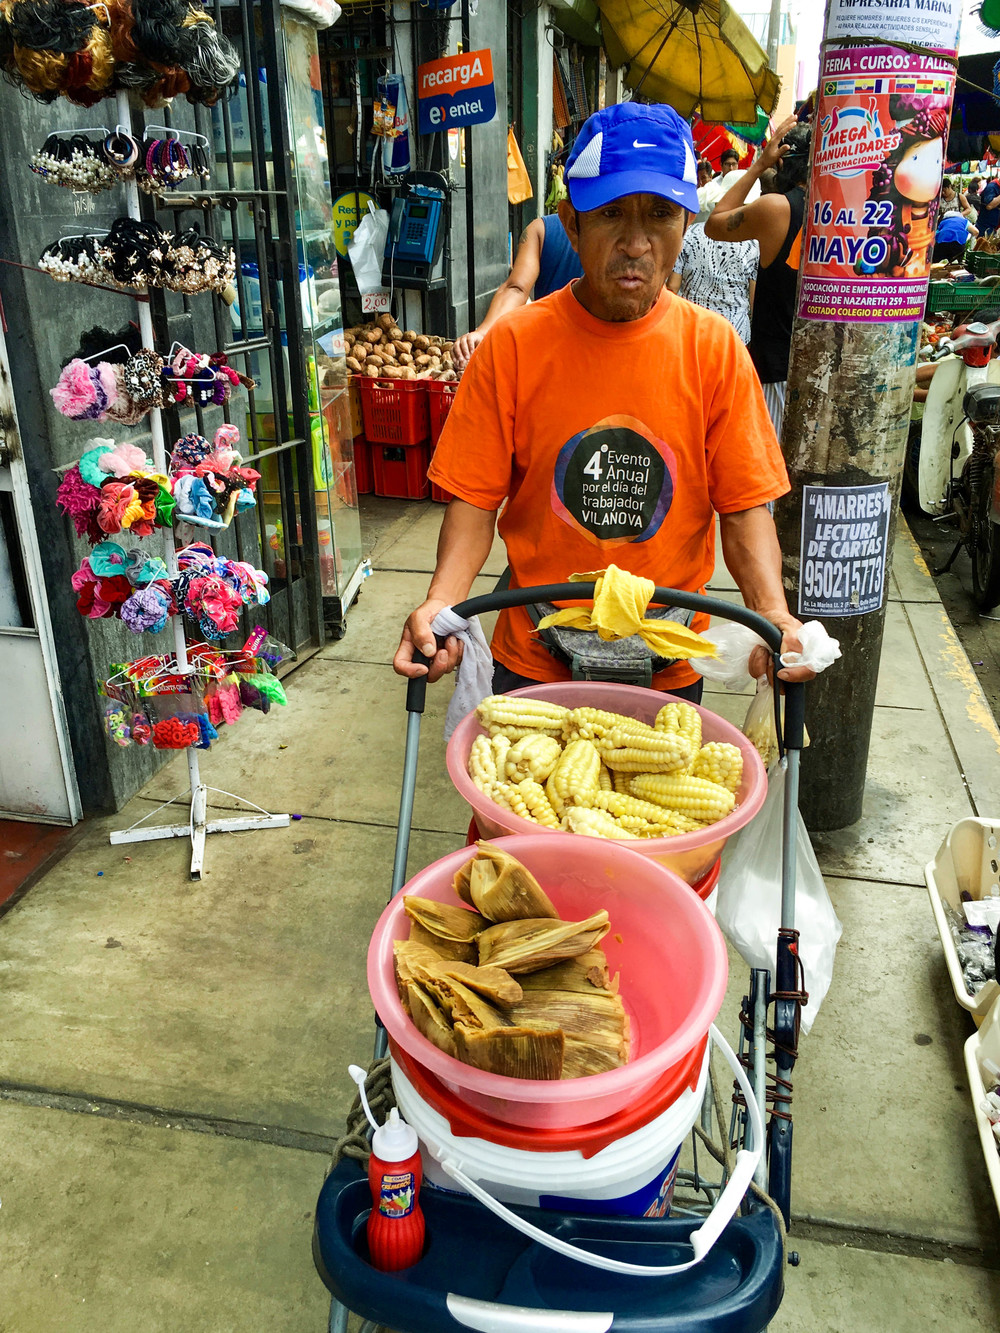 Corn and tamales (made of corn) in a stroller.